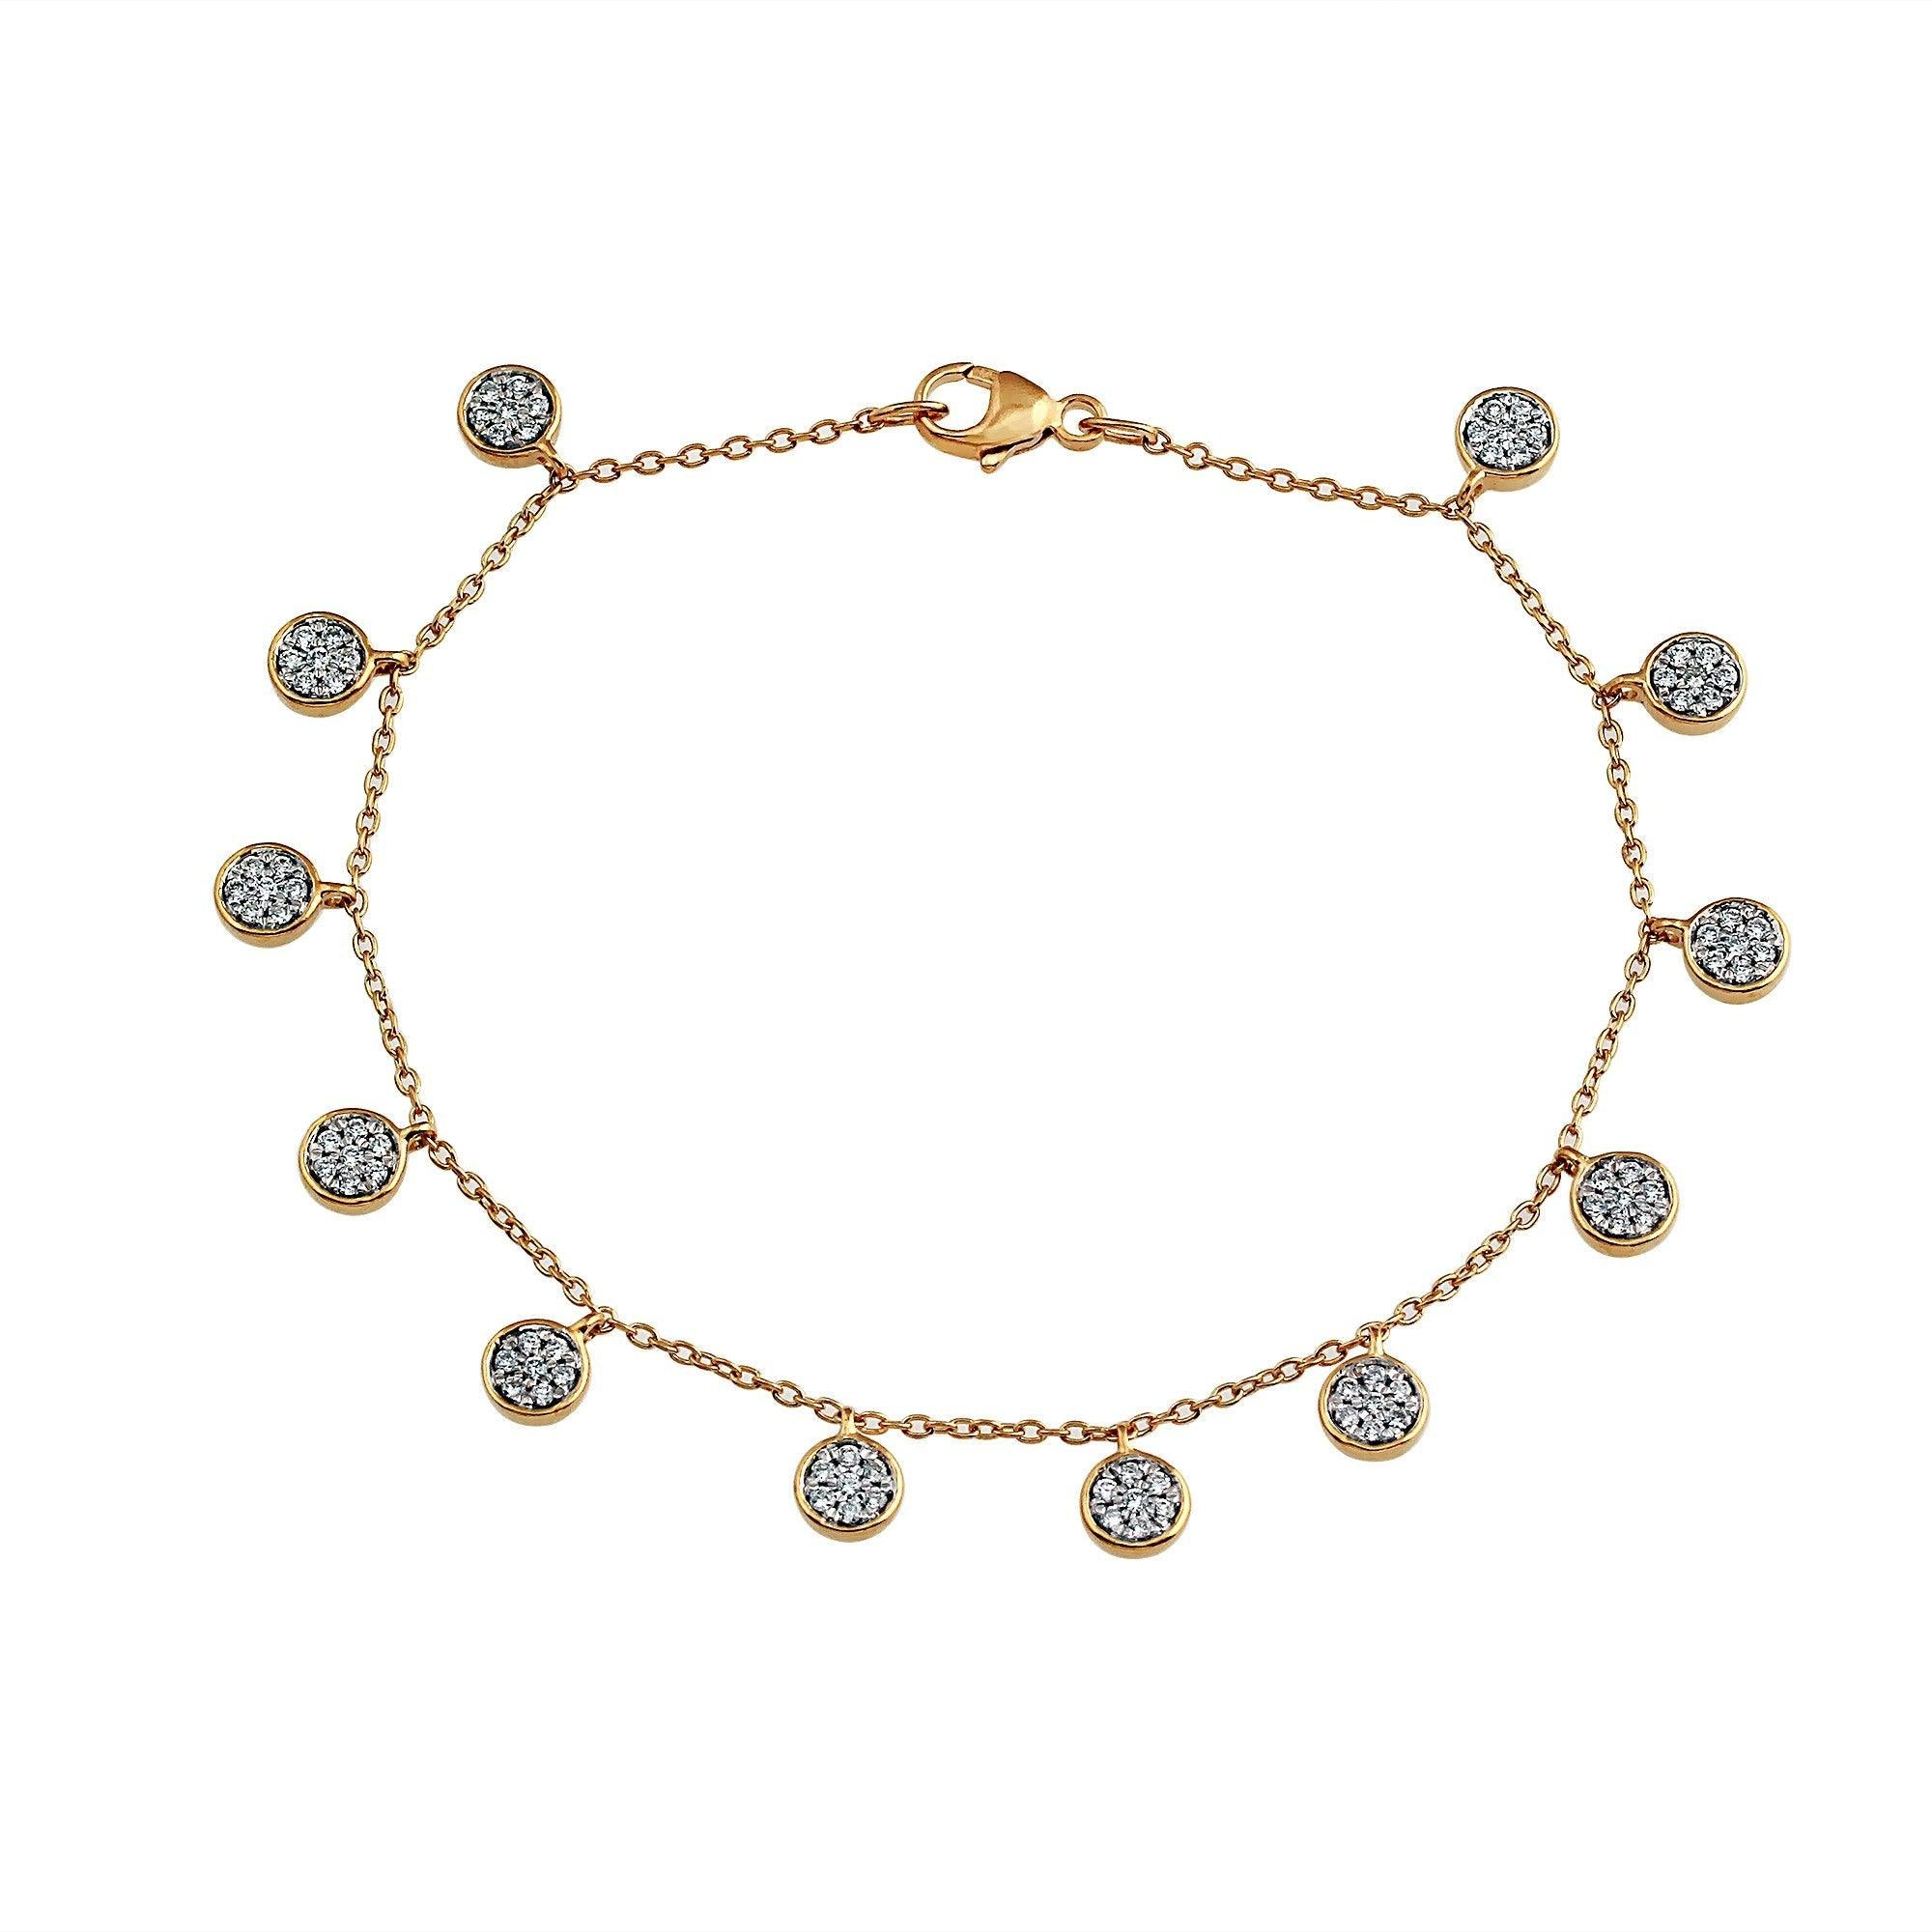 Nuri & Ash Blaze Diamond Dangle Bracelet - 14k Gold Over Sterling Silver